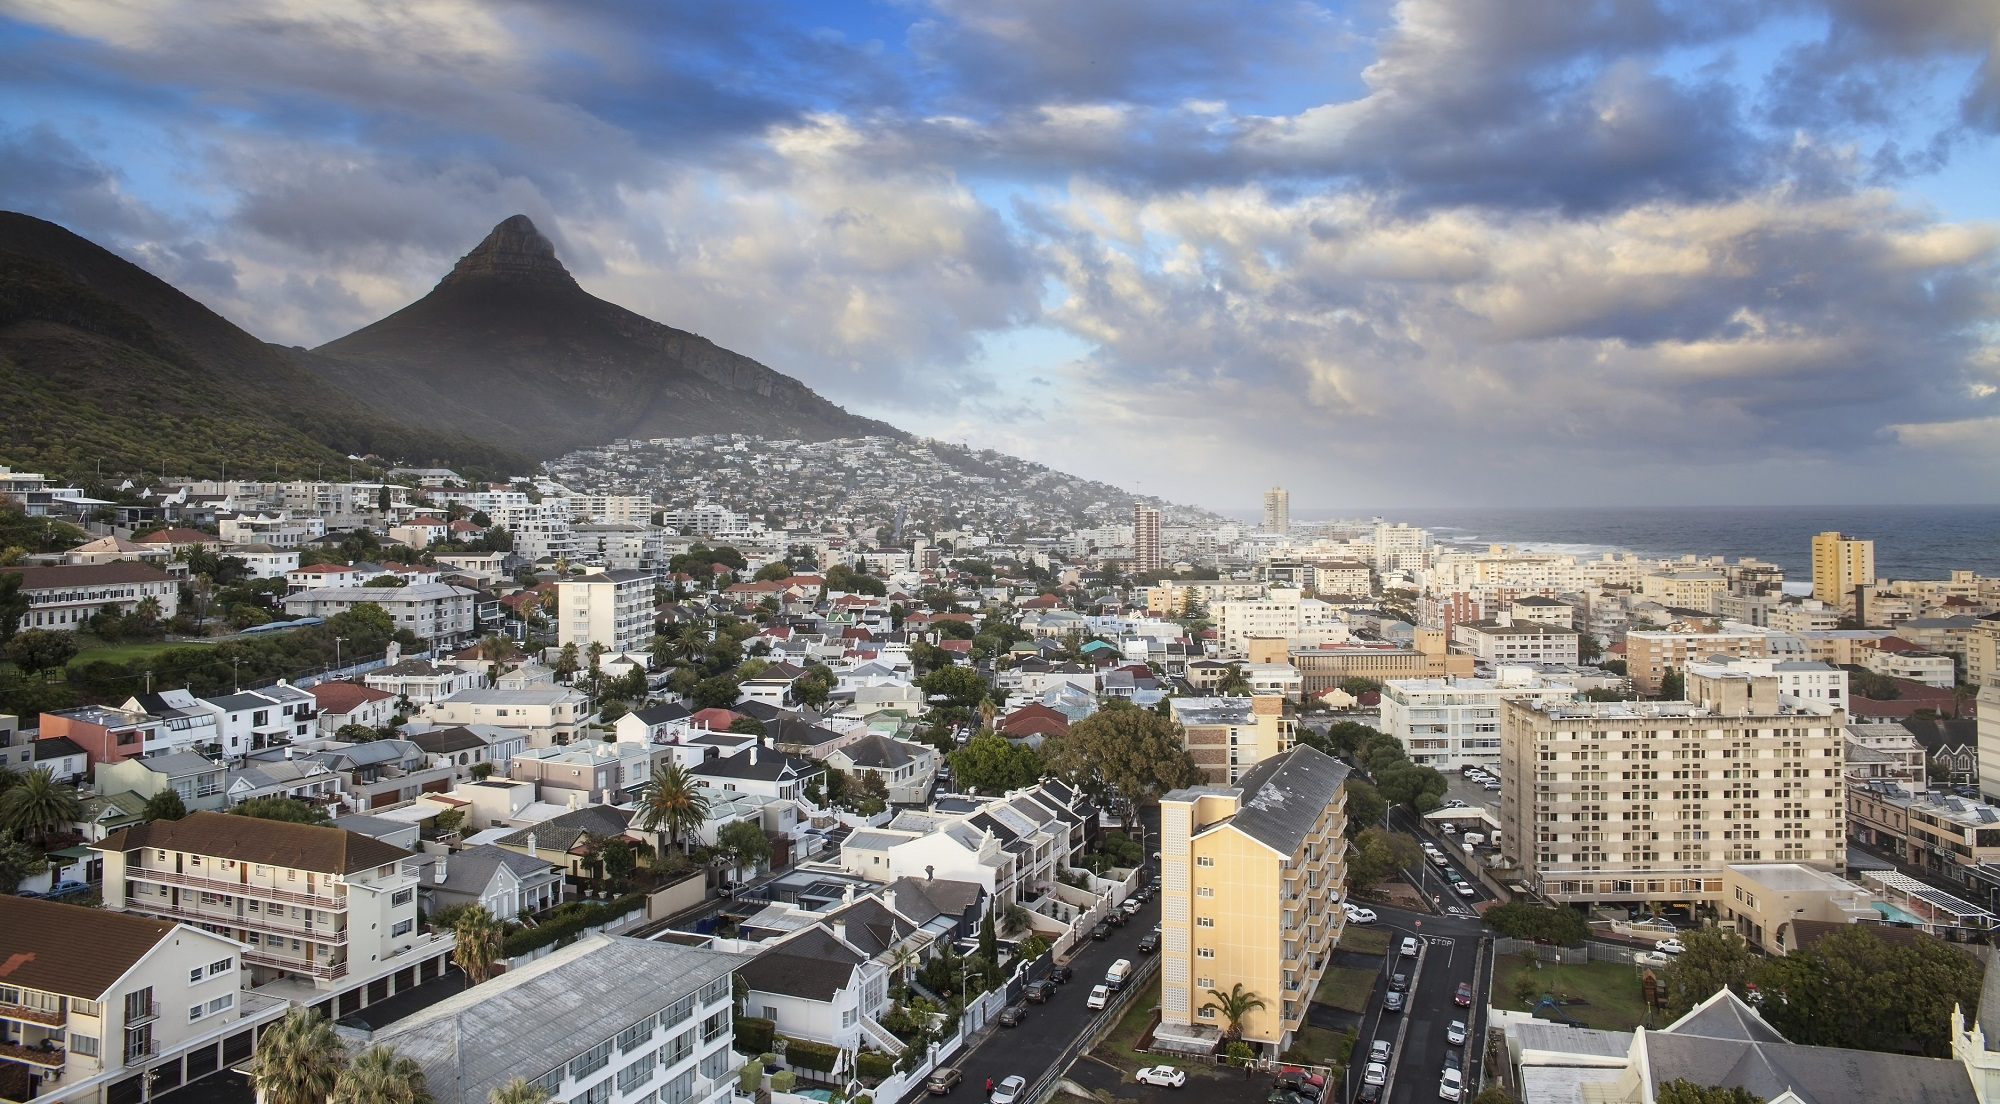 City of Cape Town chooses Landis+Gyr Sym2 metering solution